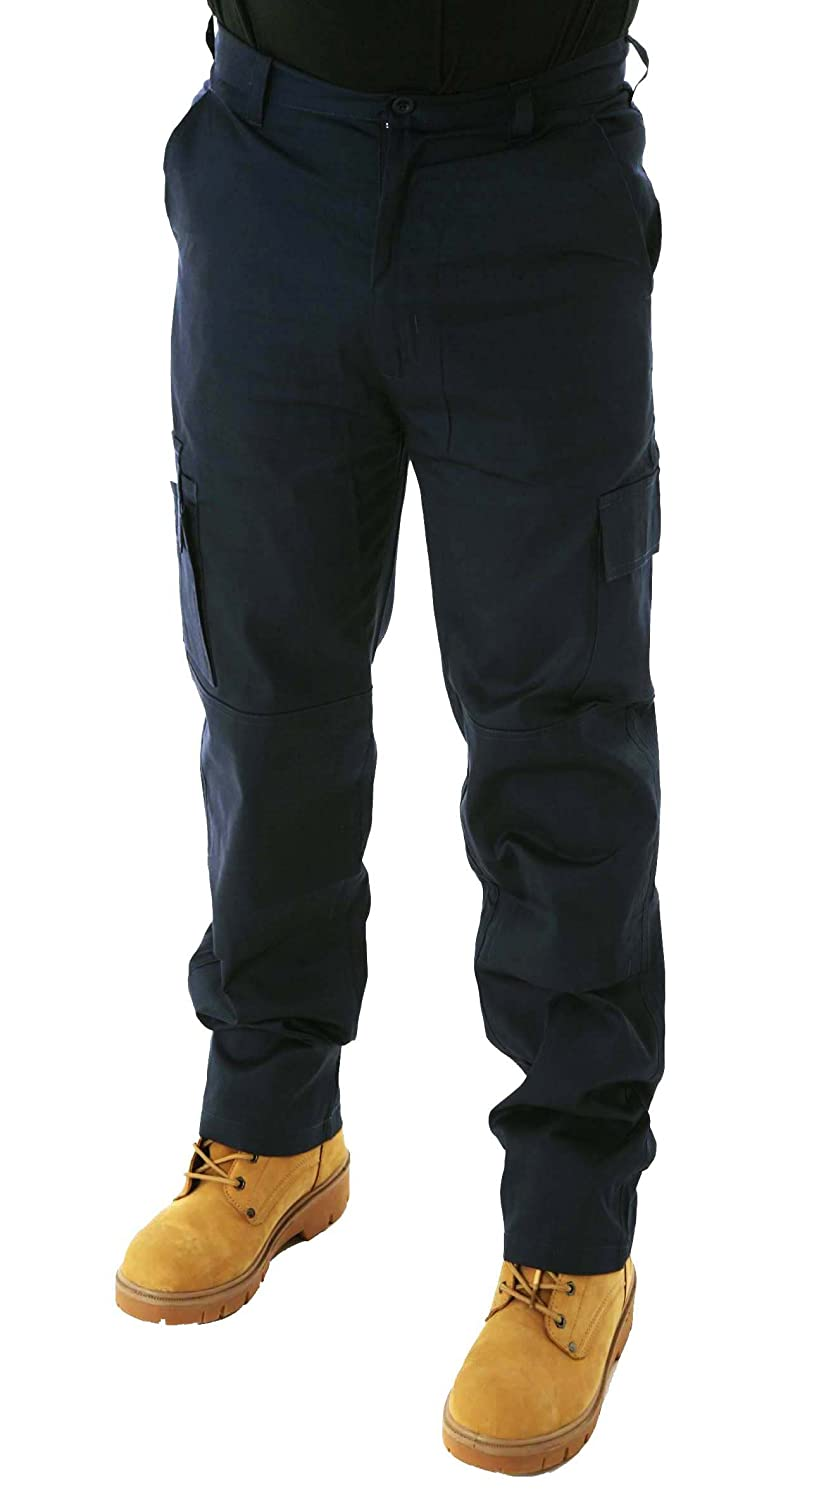 Mens Lightweight Cargo Combat Work Trousers with Knee Pad Pockets Size 28 to 52 Black or Navy By BWM Builder Worker Mechanic